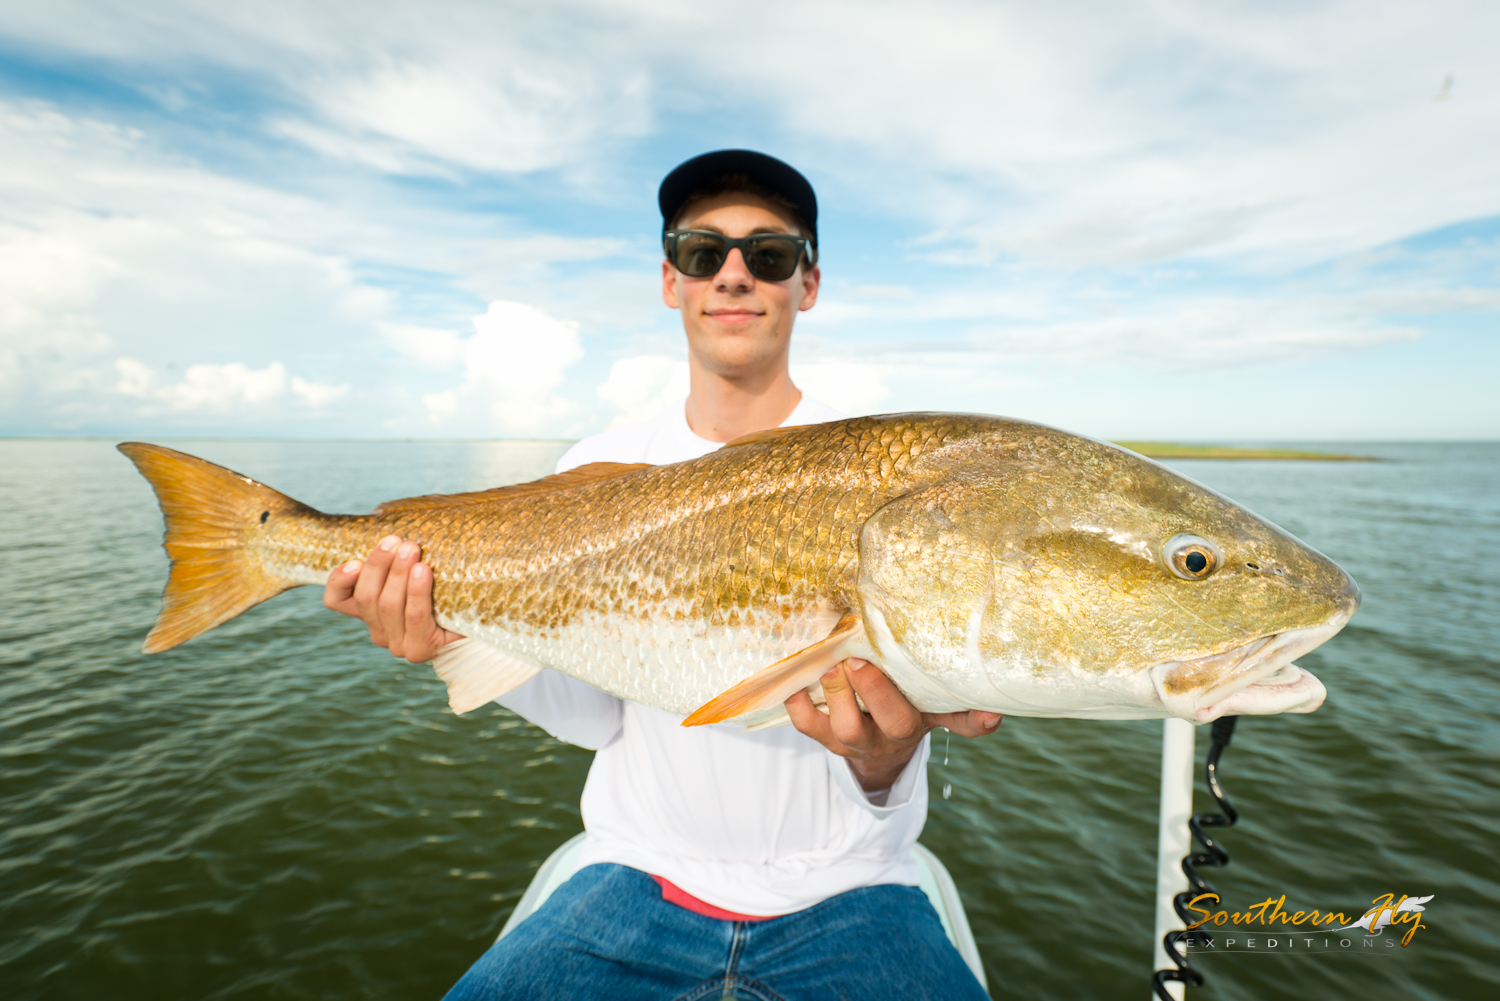 fly fishing new orleans and louisiana redfish guide Southern Fly Expeditions - Louisiana's best fly fishing guide